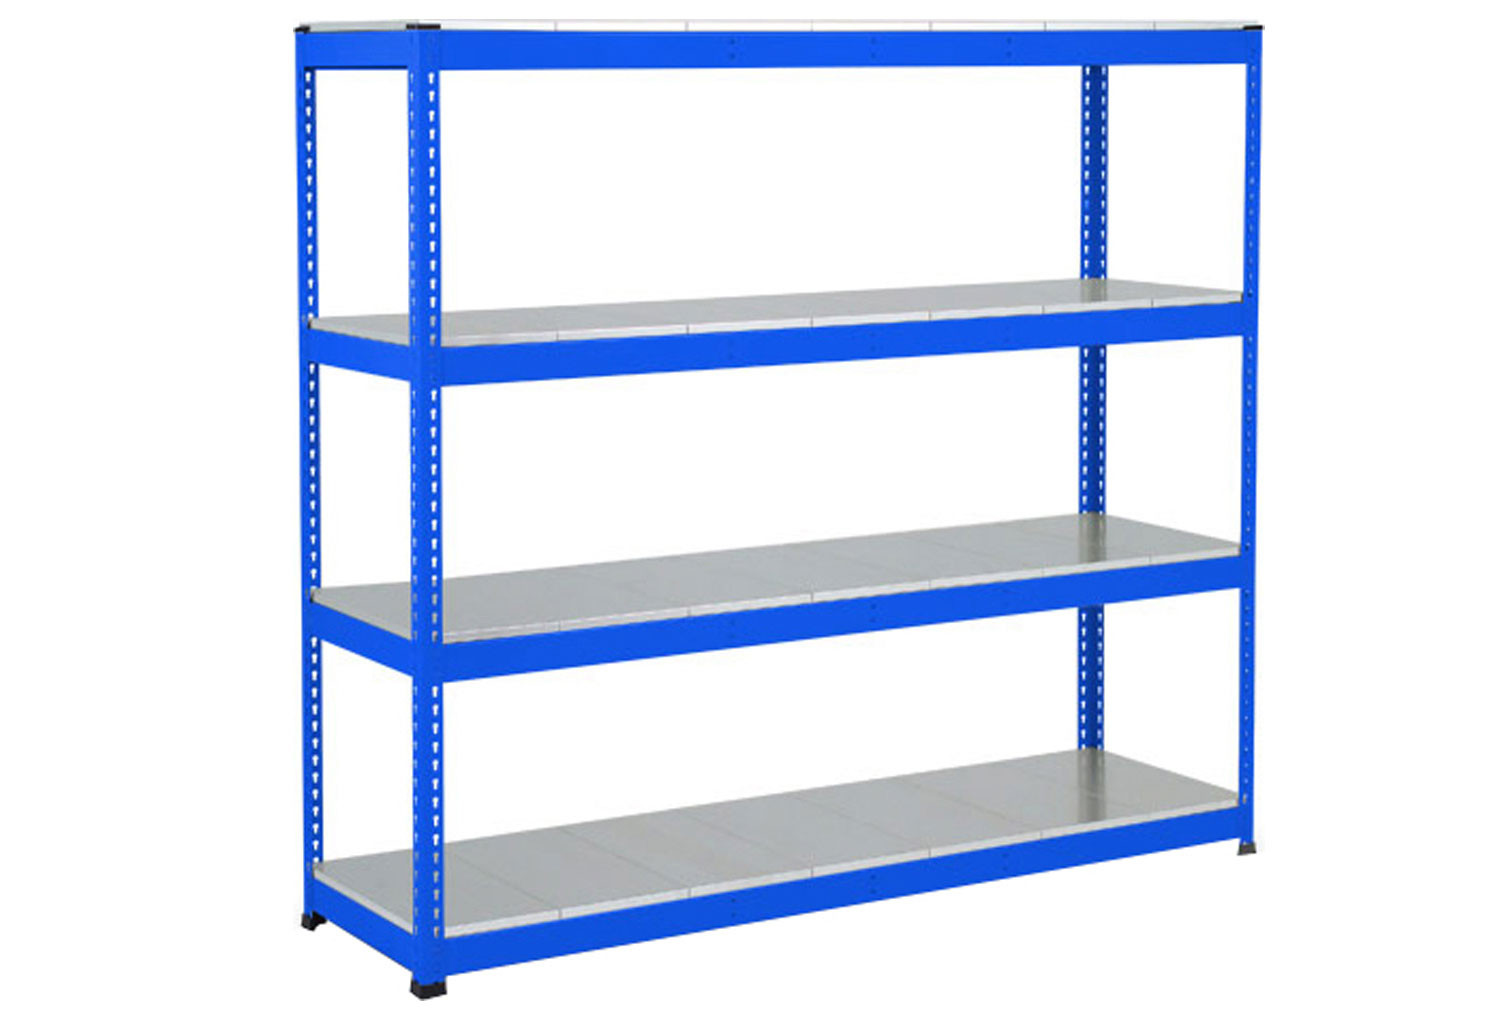 Rapid 1 Heavy Duty Shelving With 4 Galvanized Shelves 1525wx2440h (Blue)